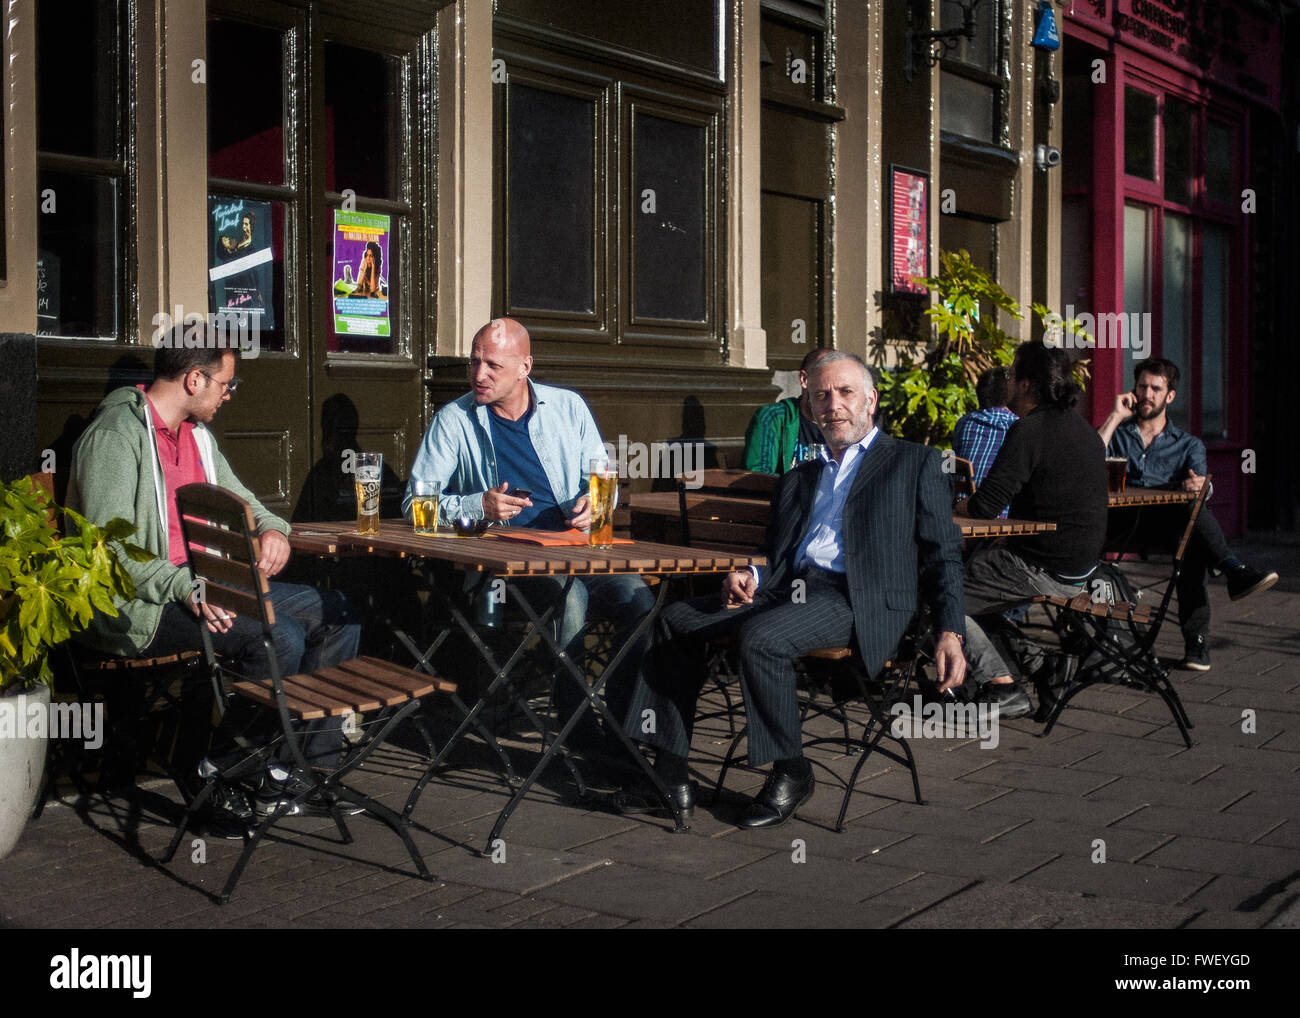 Punters sitting outdoors at pub,sunny summer late afternoon, Islington, London, UK - Stock Image